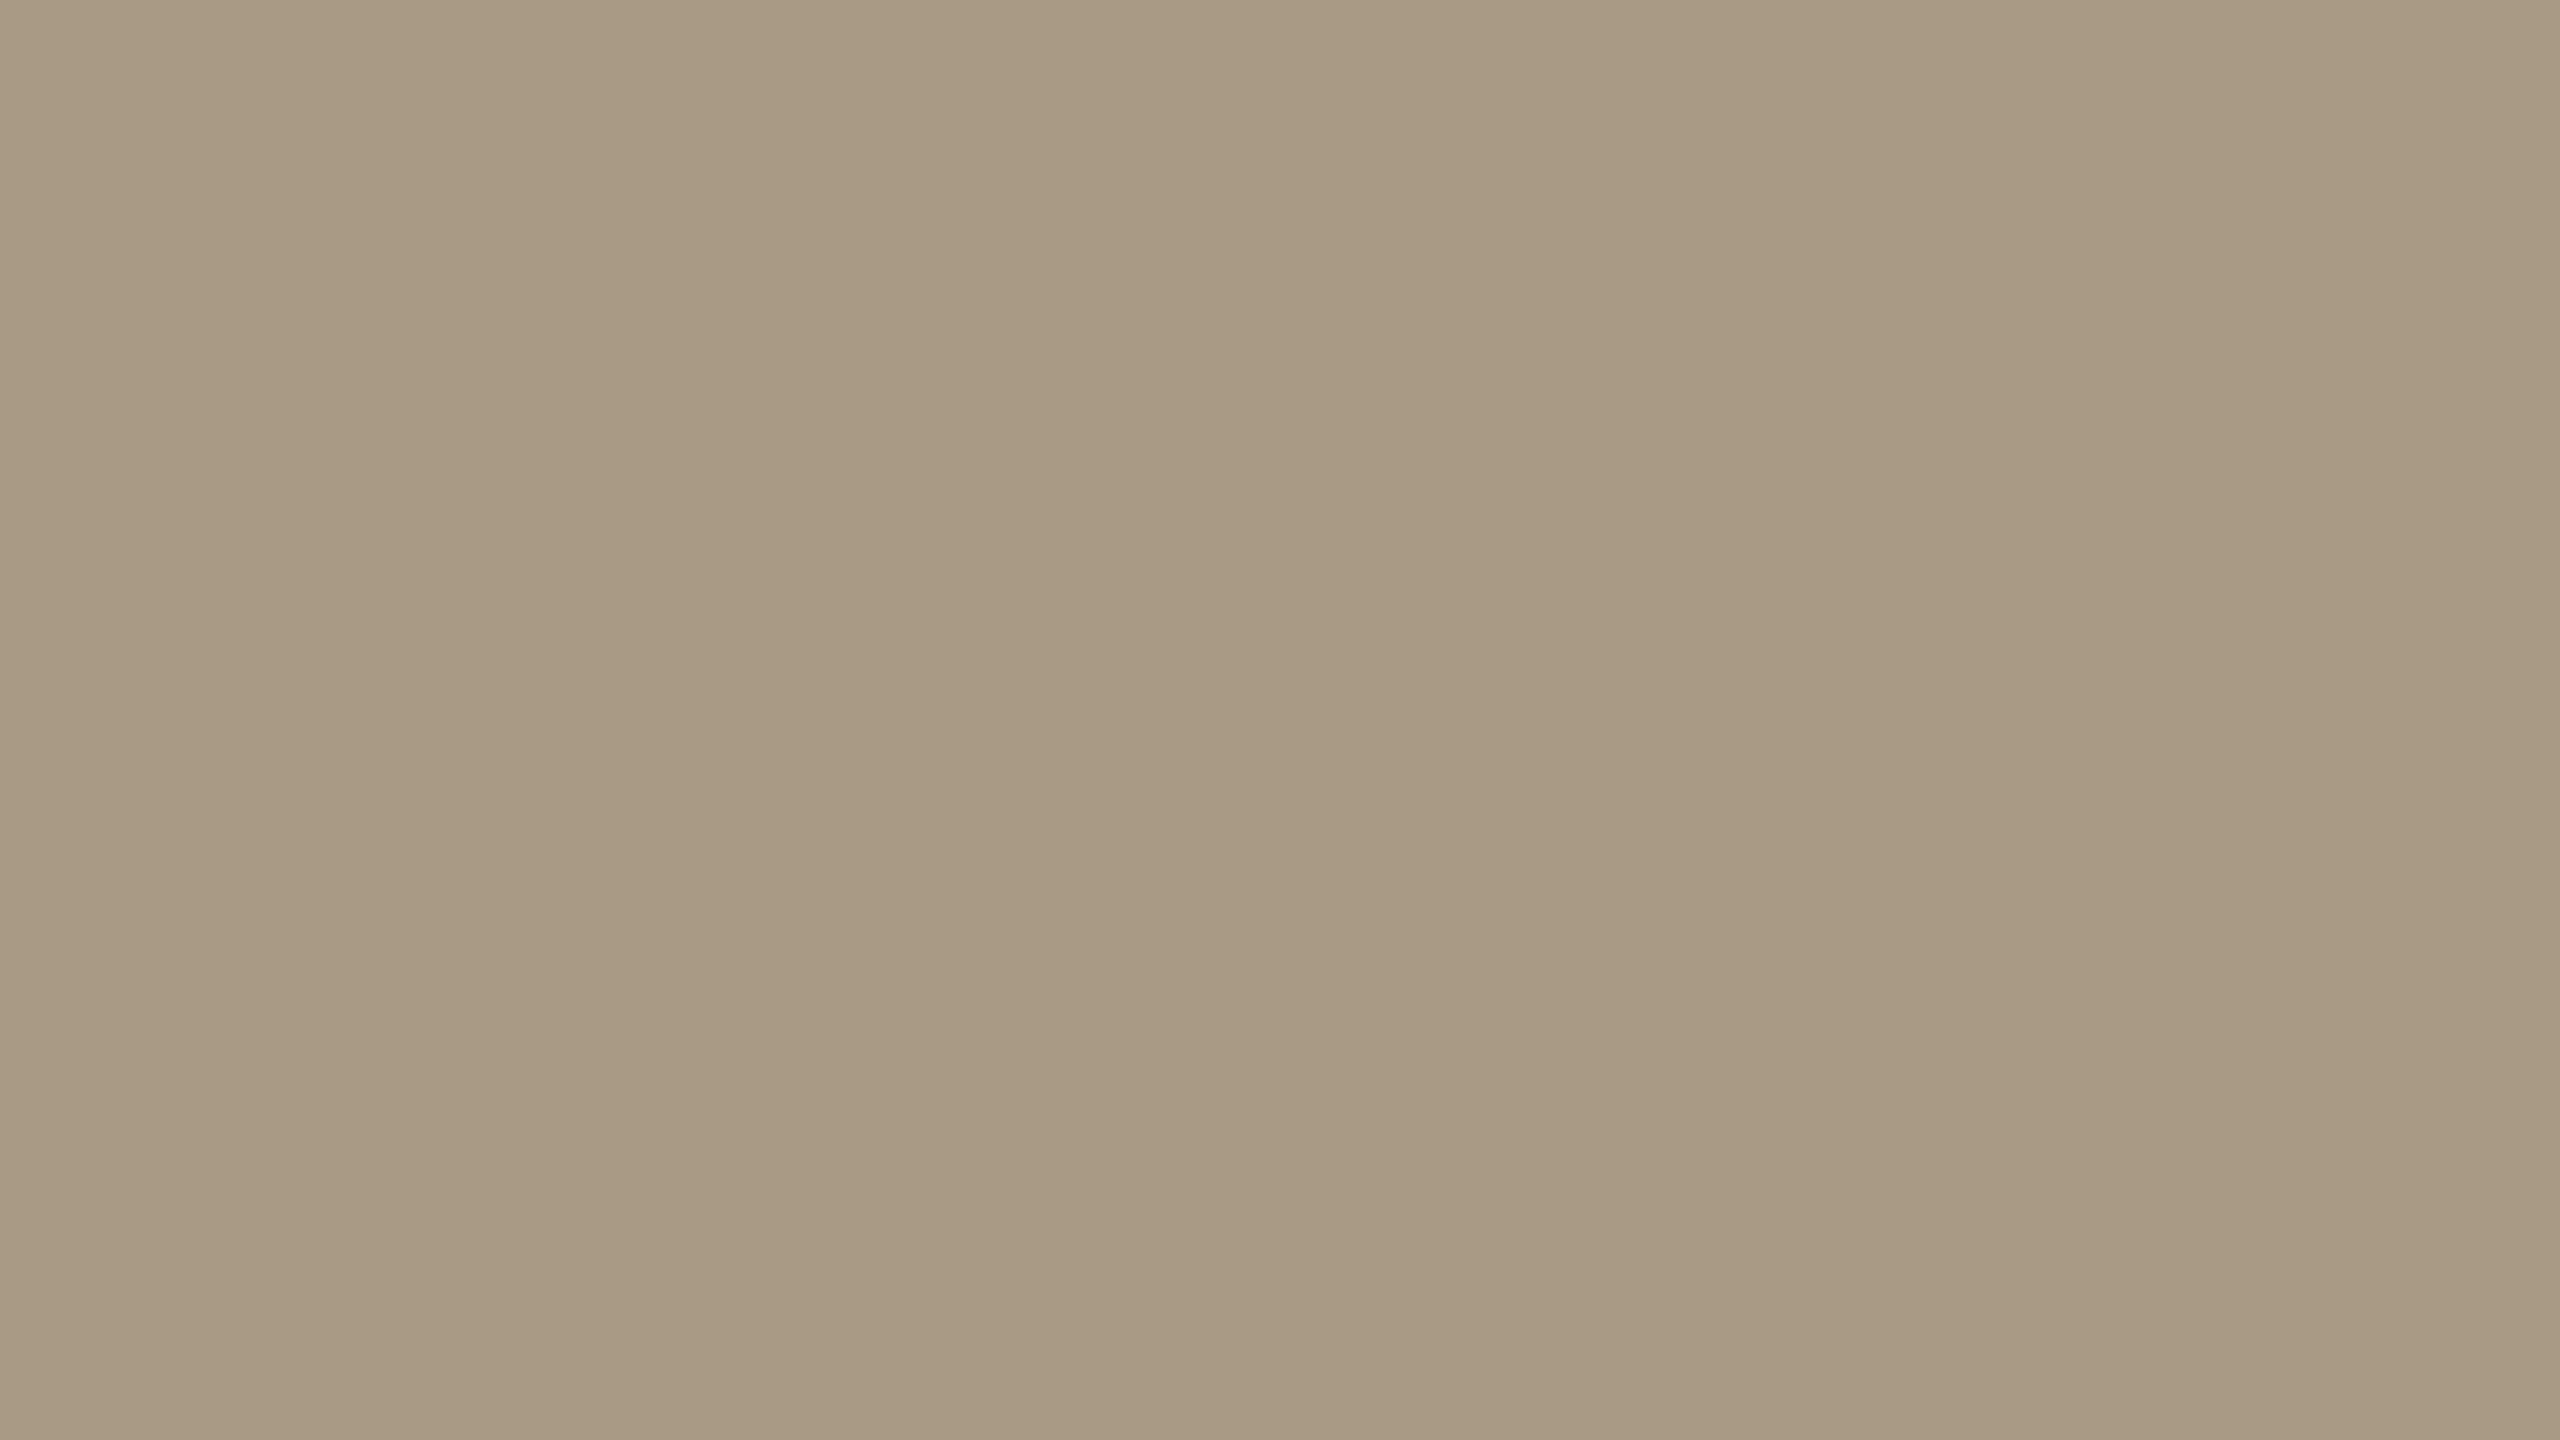 2560x1440 Grullo Solid Color Background